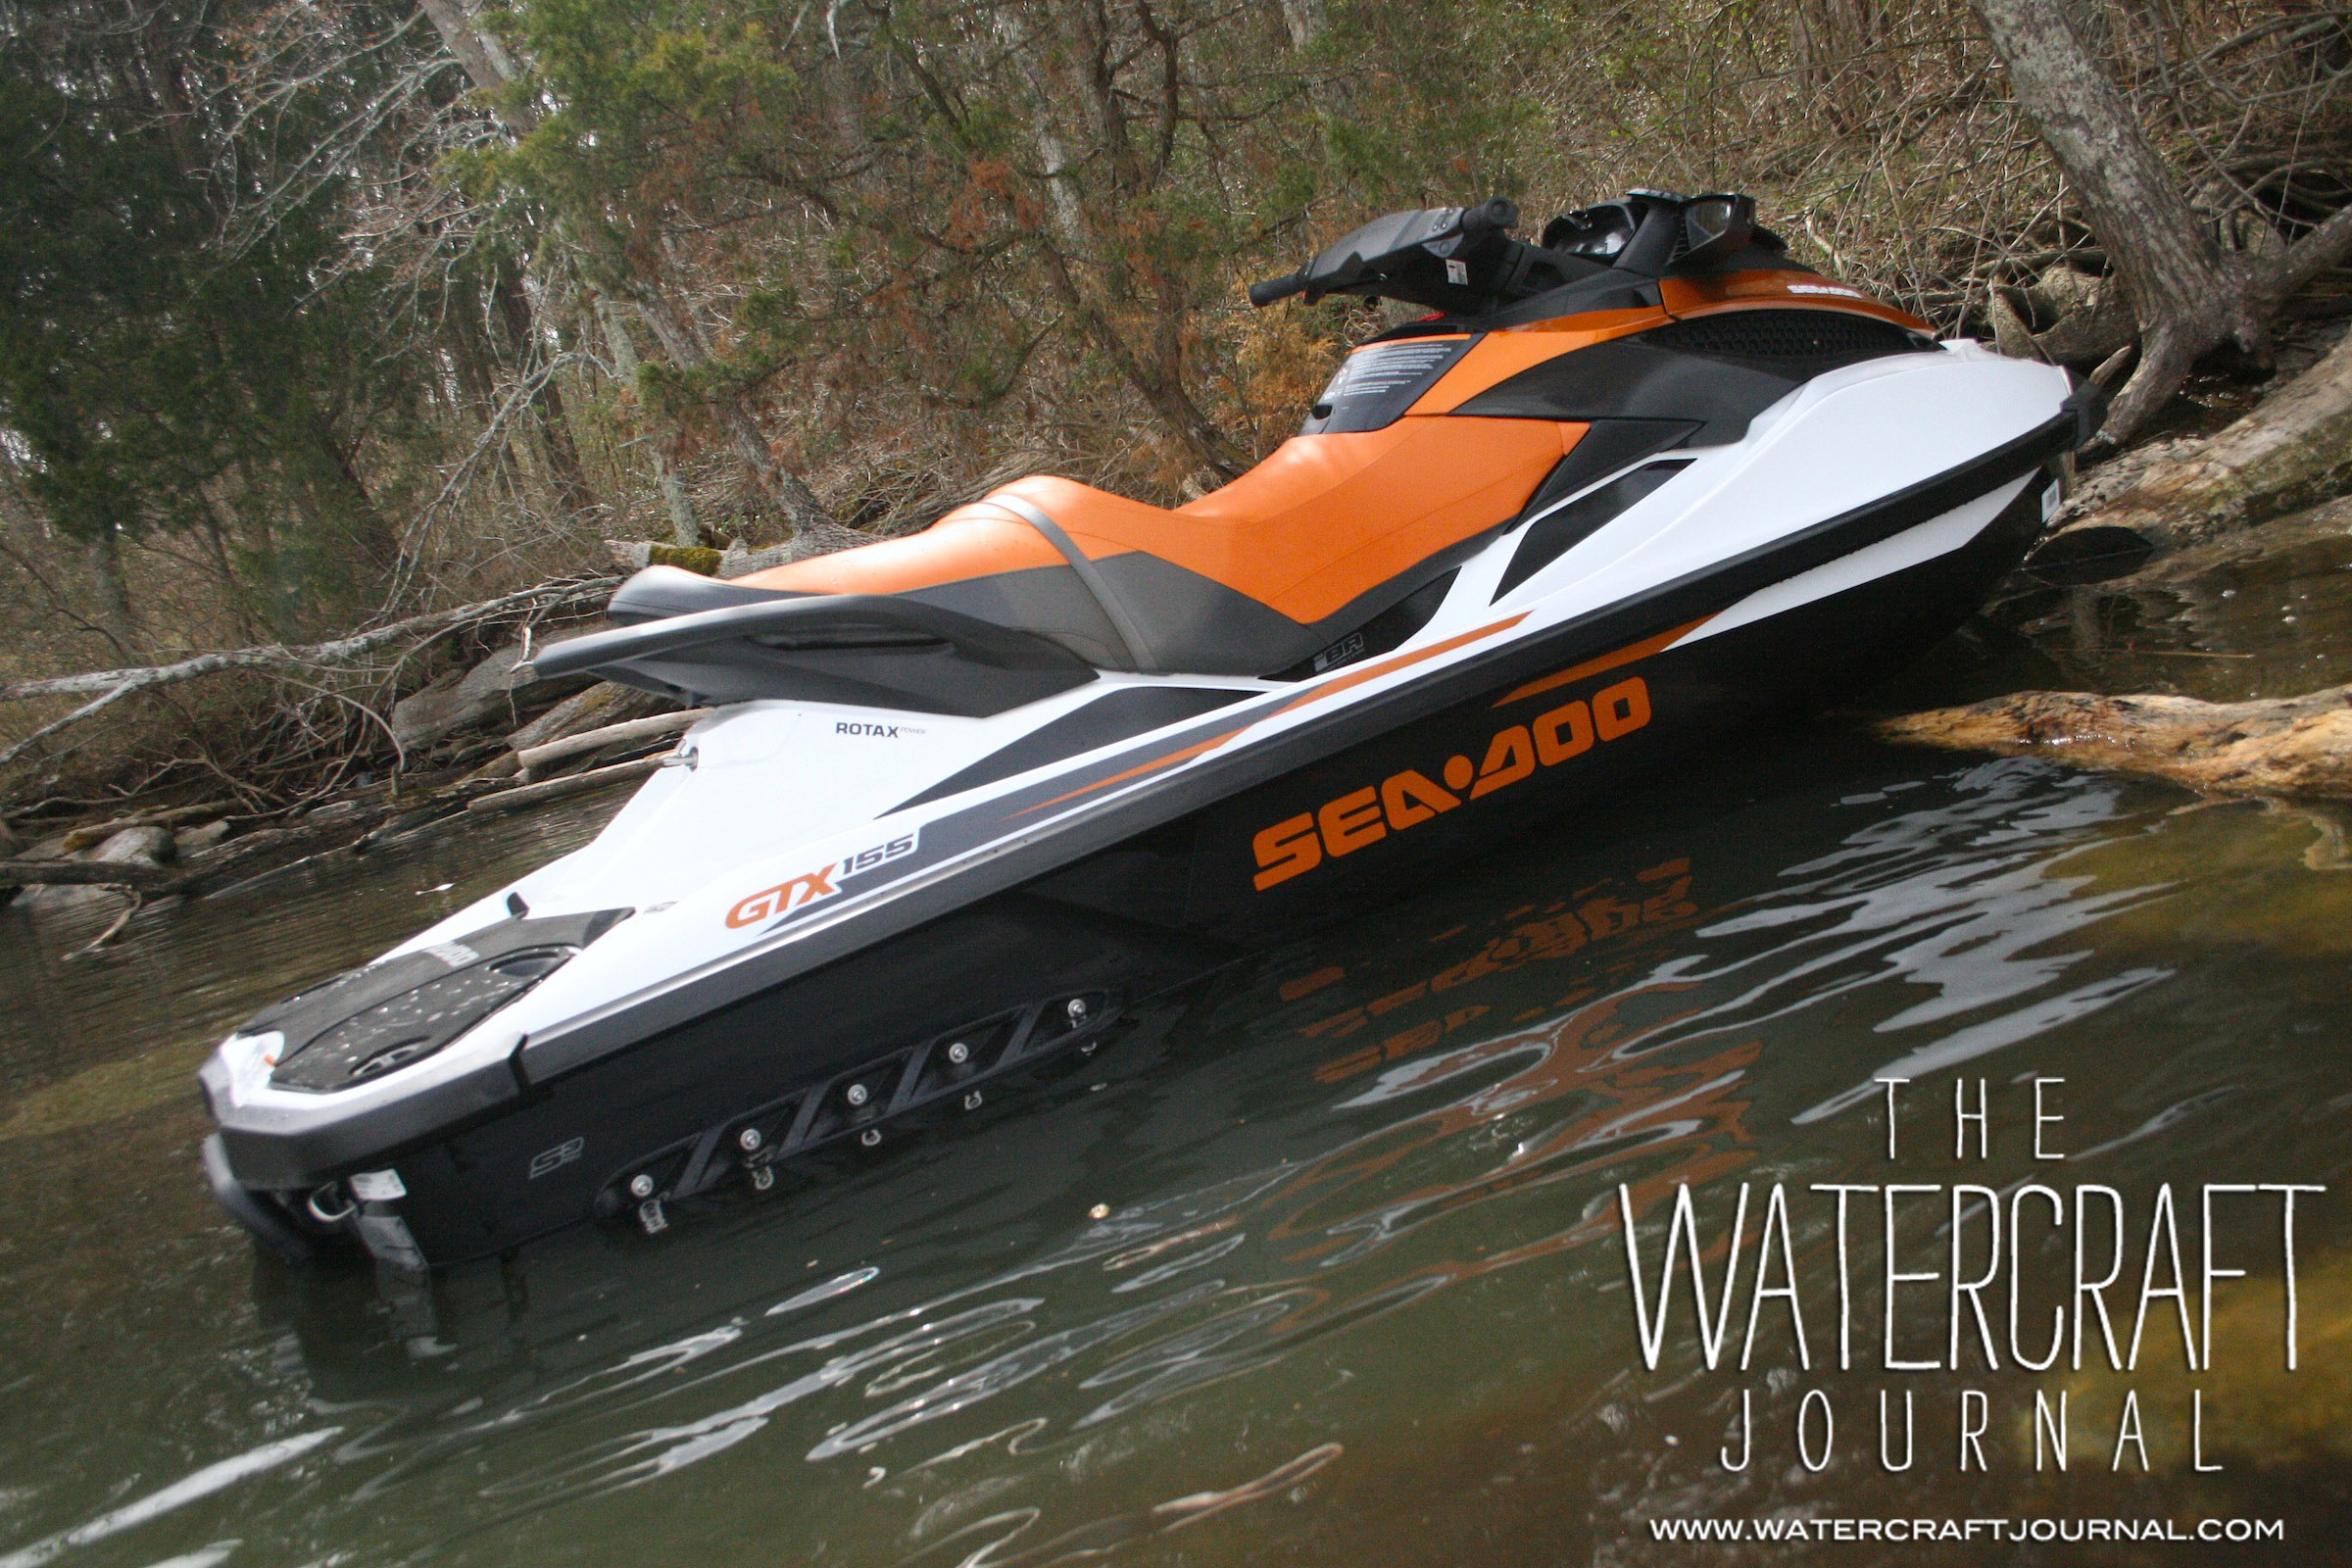 Easy Rider: 2014 Sea-Doo GTX 155 | The Watercraft Journal | the best